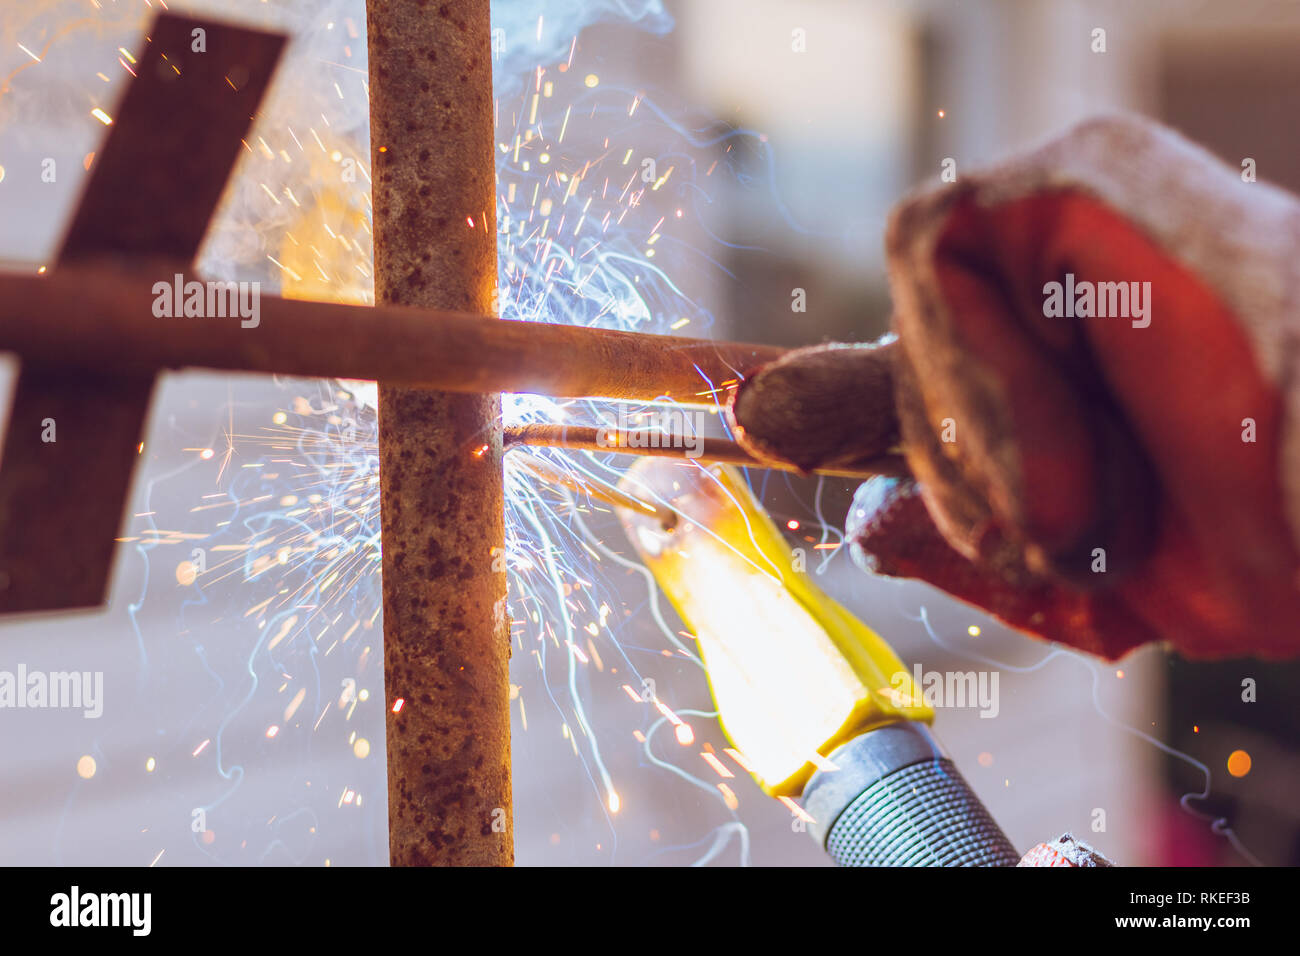 Welding machine close-up of a spark when working with welding - Stock Image